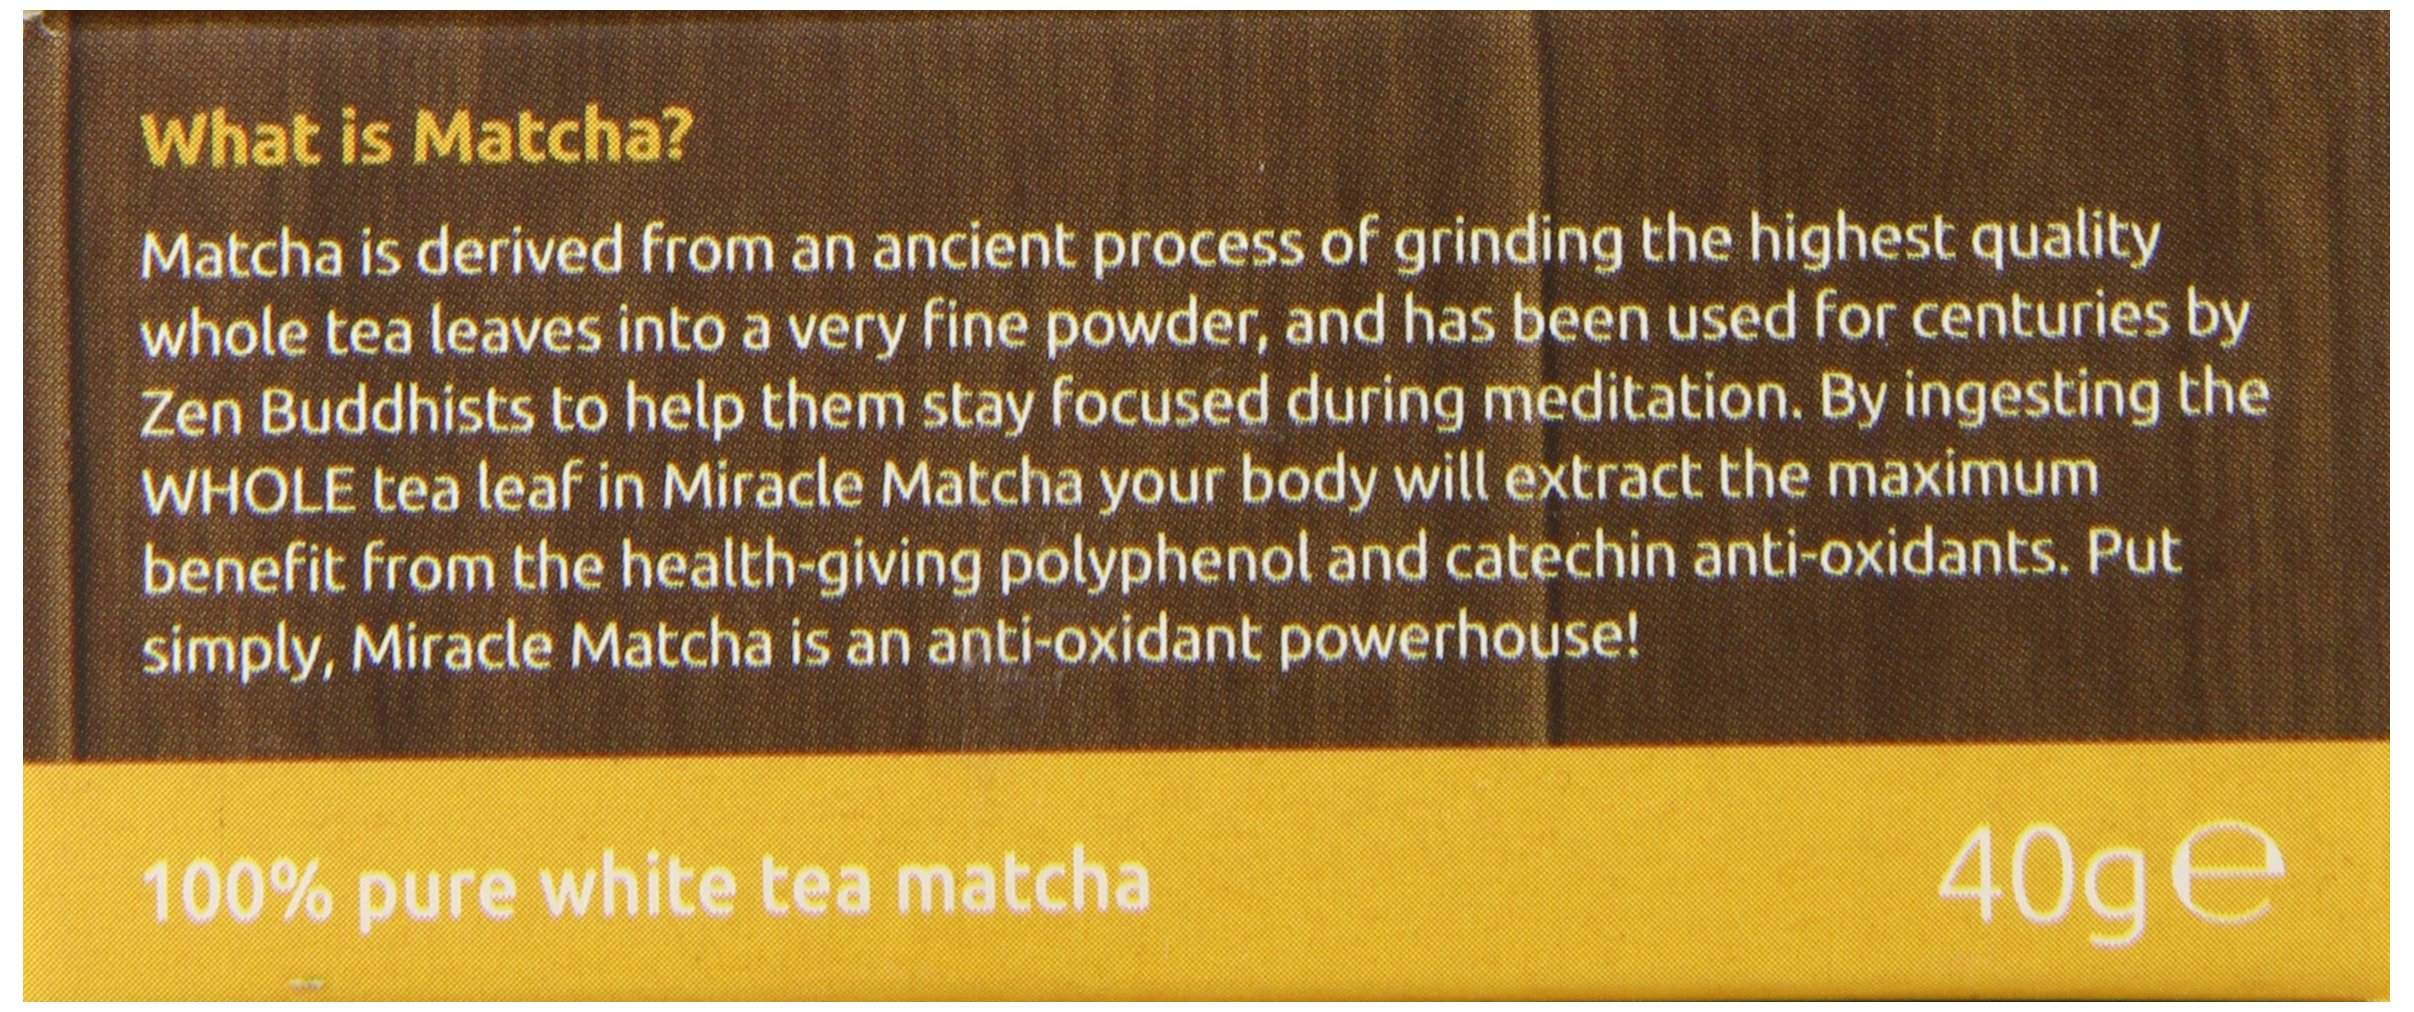 Miracle Matcha 100% Pure White Tea Matcha, 1.41 oz, Polyphenol and Catechin Antioxidants